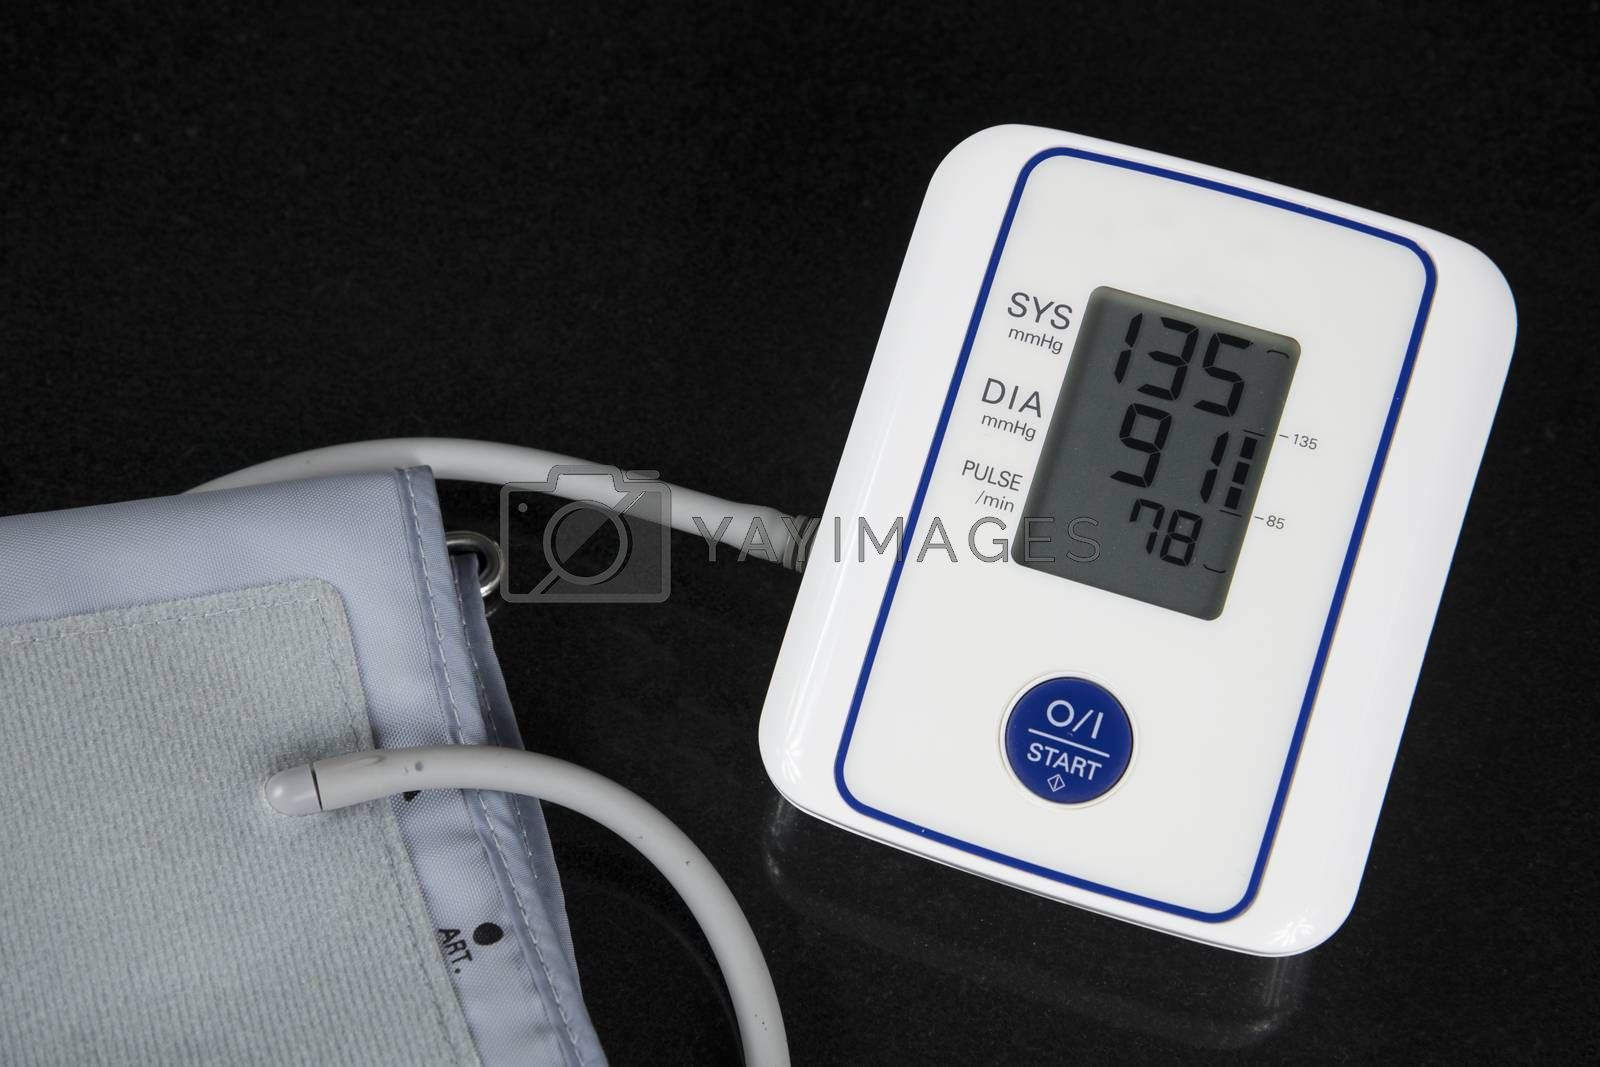 Automatic Blood Pressure Monitor with figues on the screen